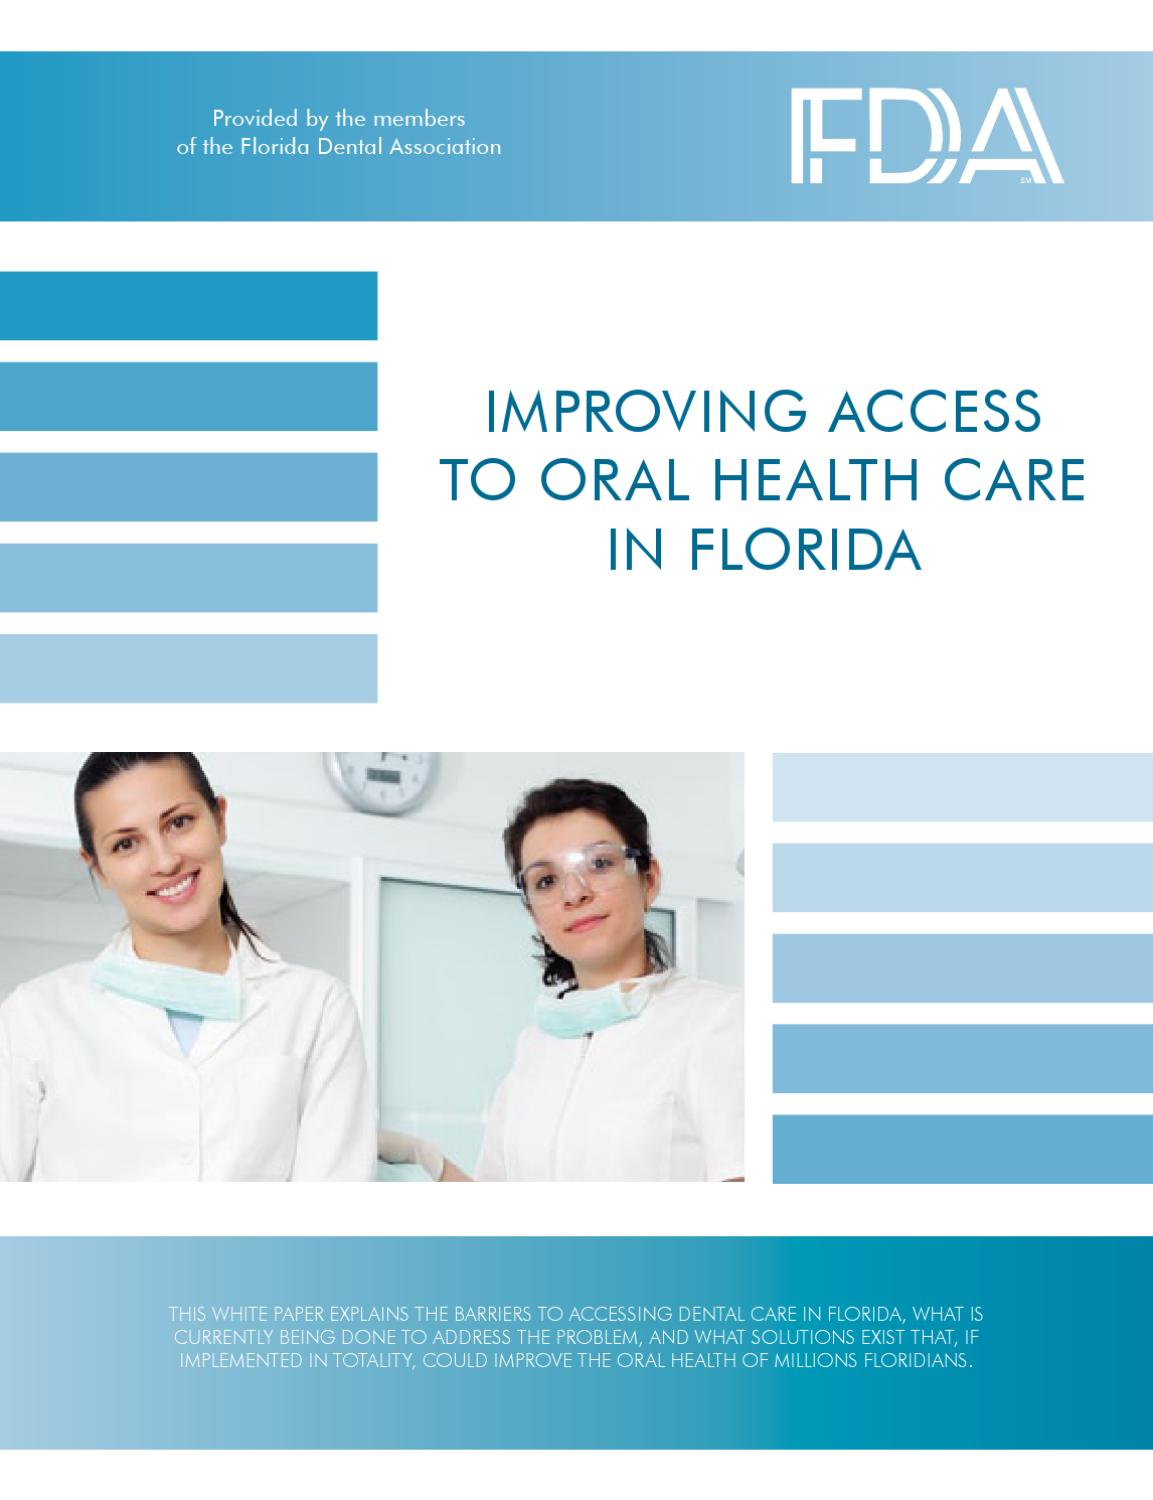 The issue of dental health and access to dental care